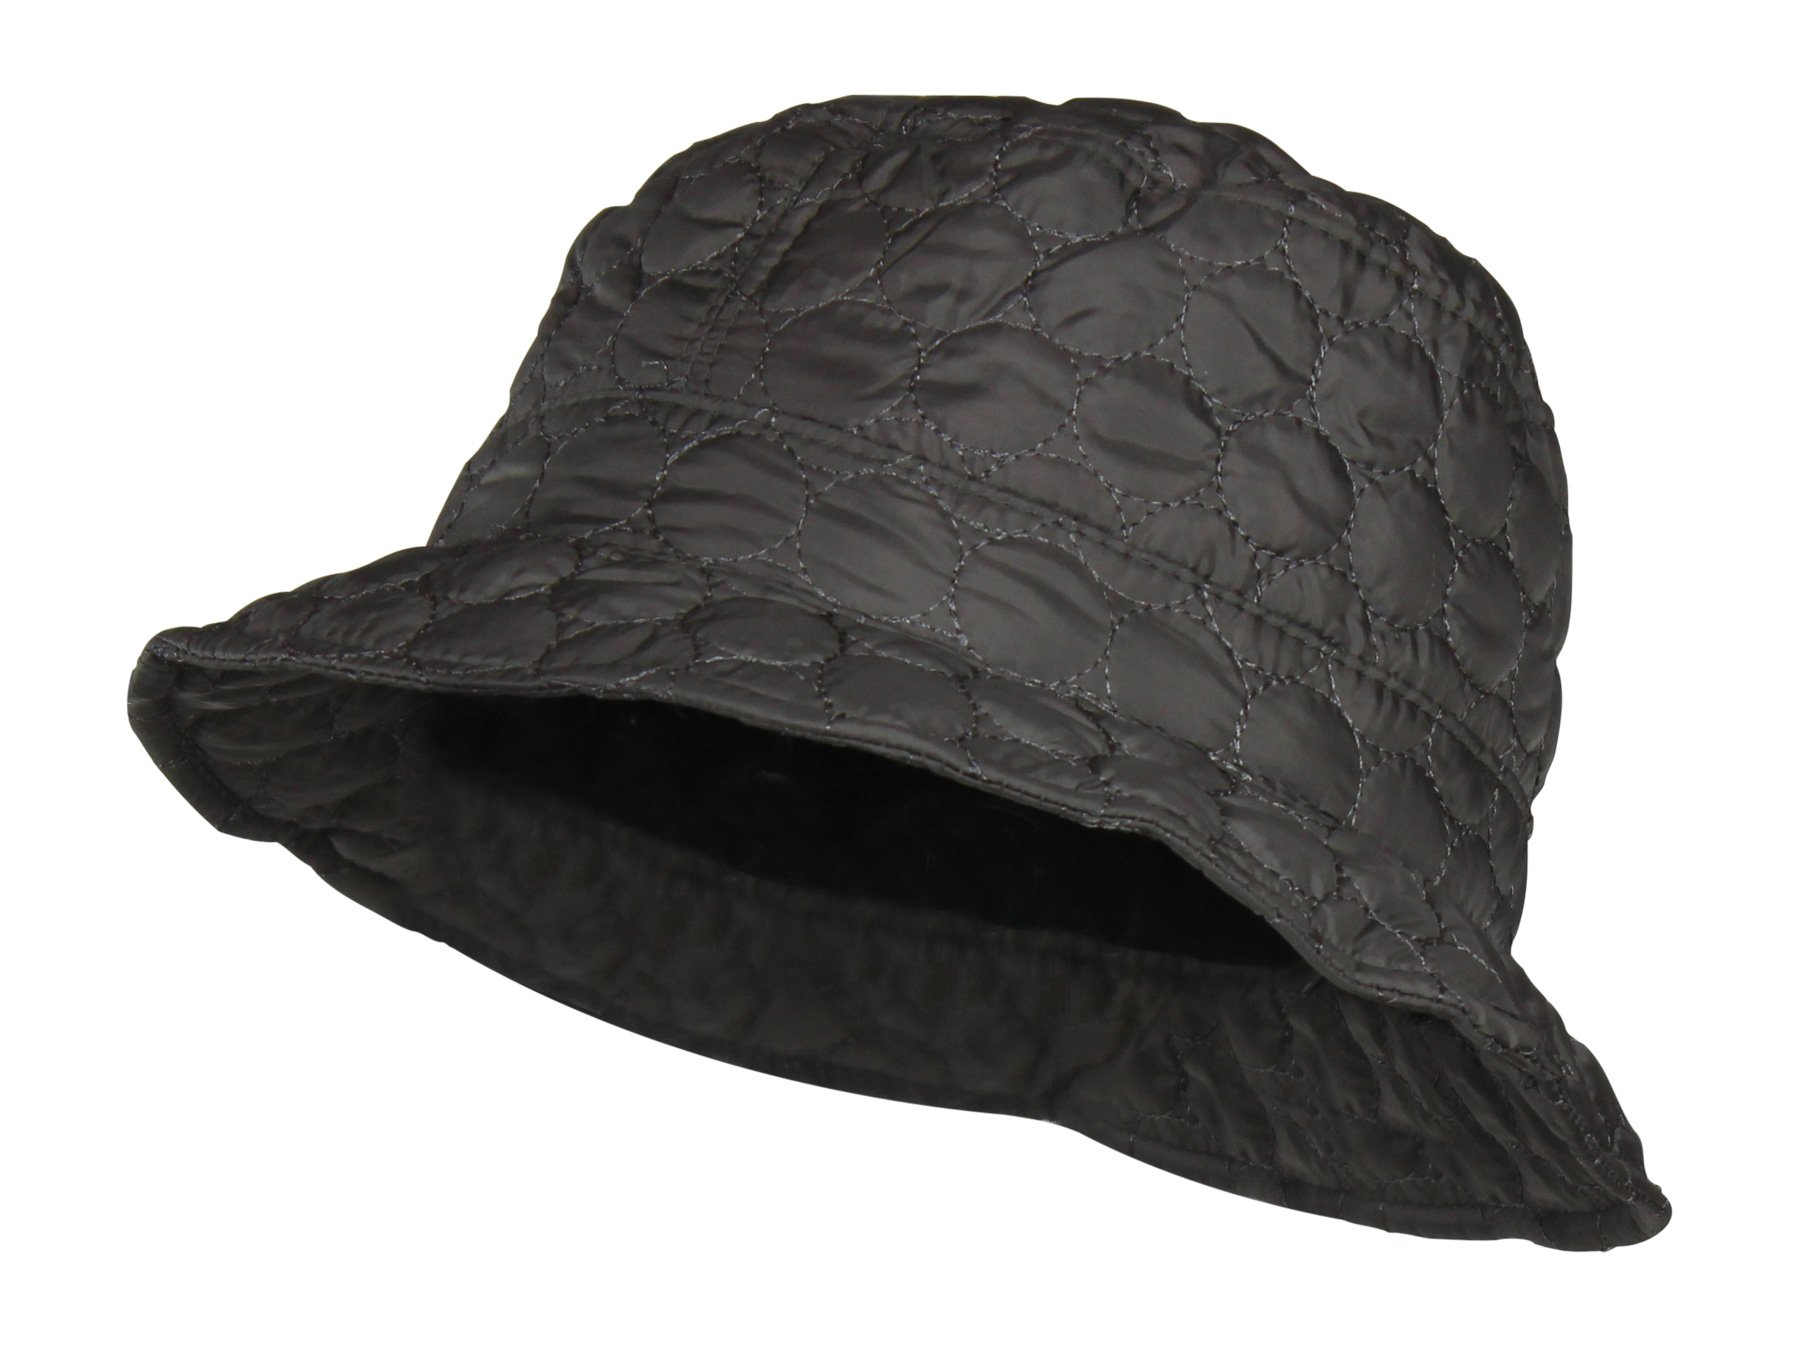 Grey Packable Water Repellent Quilted Bucket Rain Hat w/Adjustable Drawstring by Folie Co.